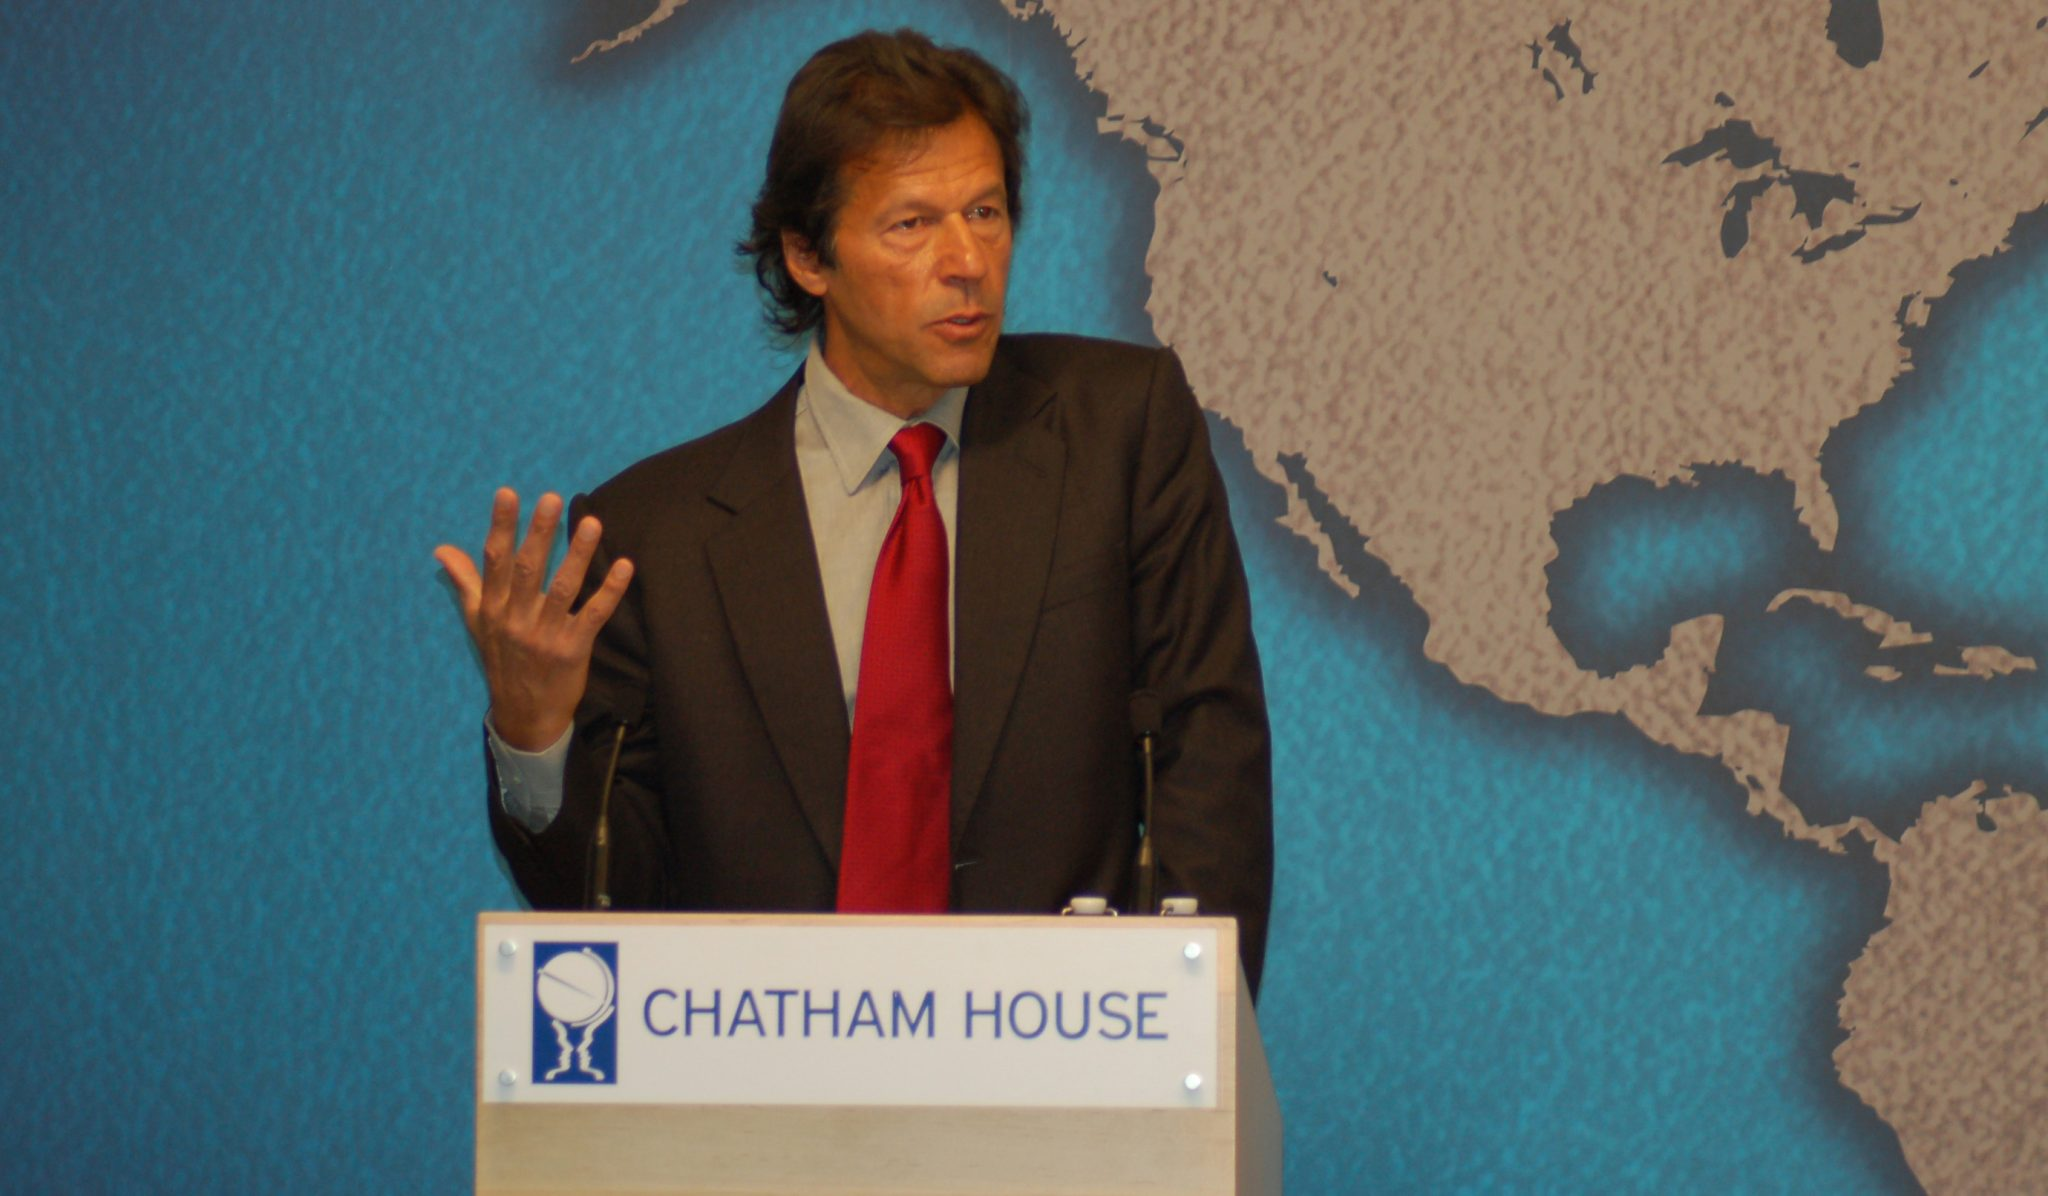 PakistanKhAn, cc Flickr Chatham House, modified, https://creativecommons.org/licenses/by/2.0/